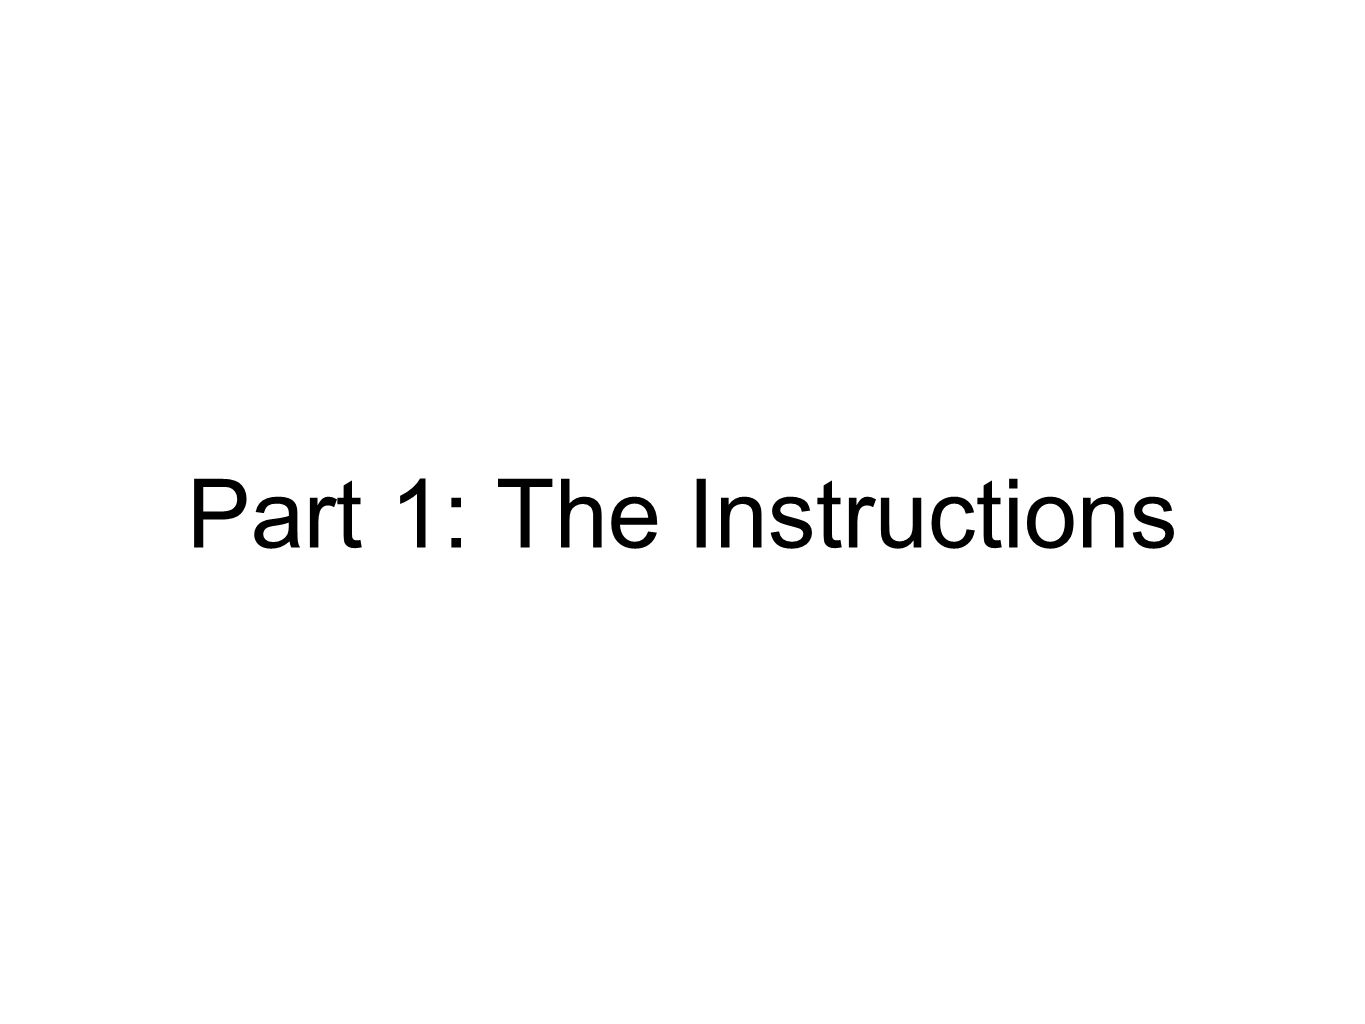 Part 1: The Instructions